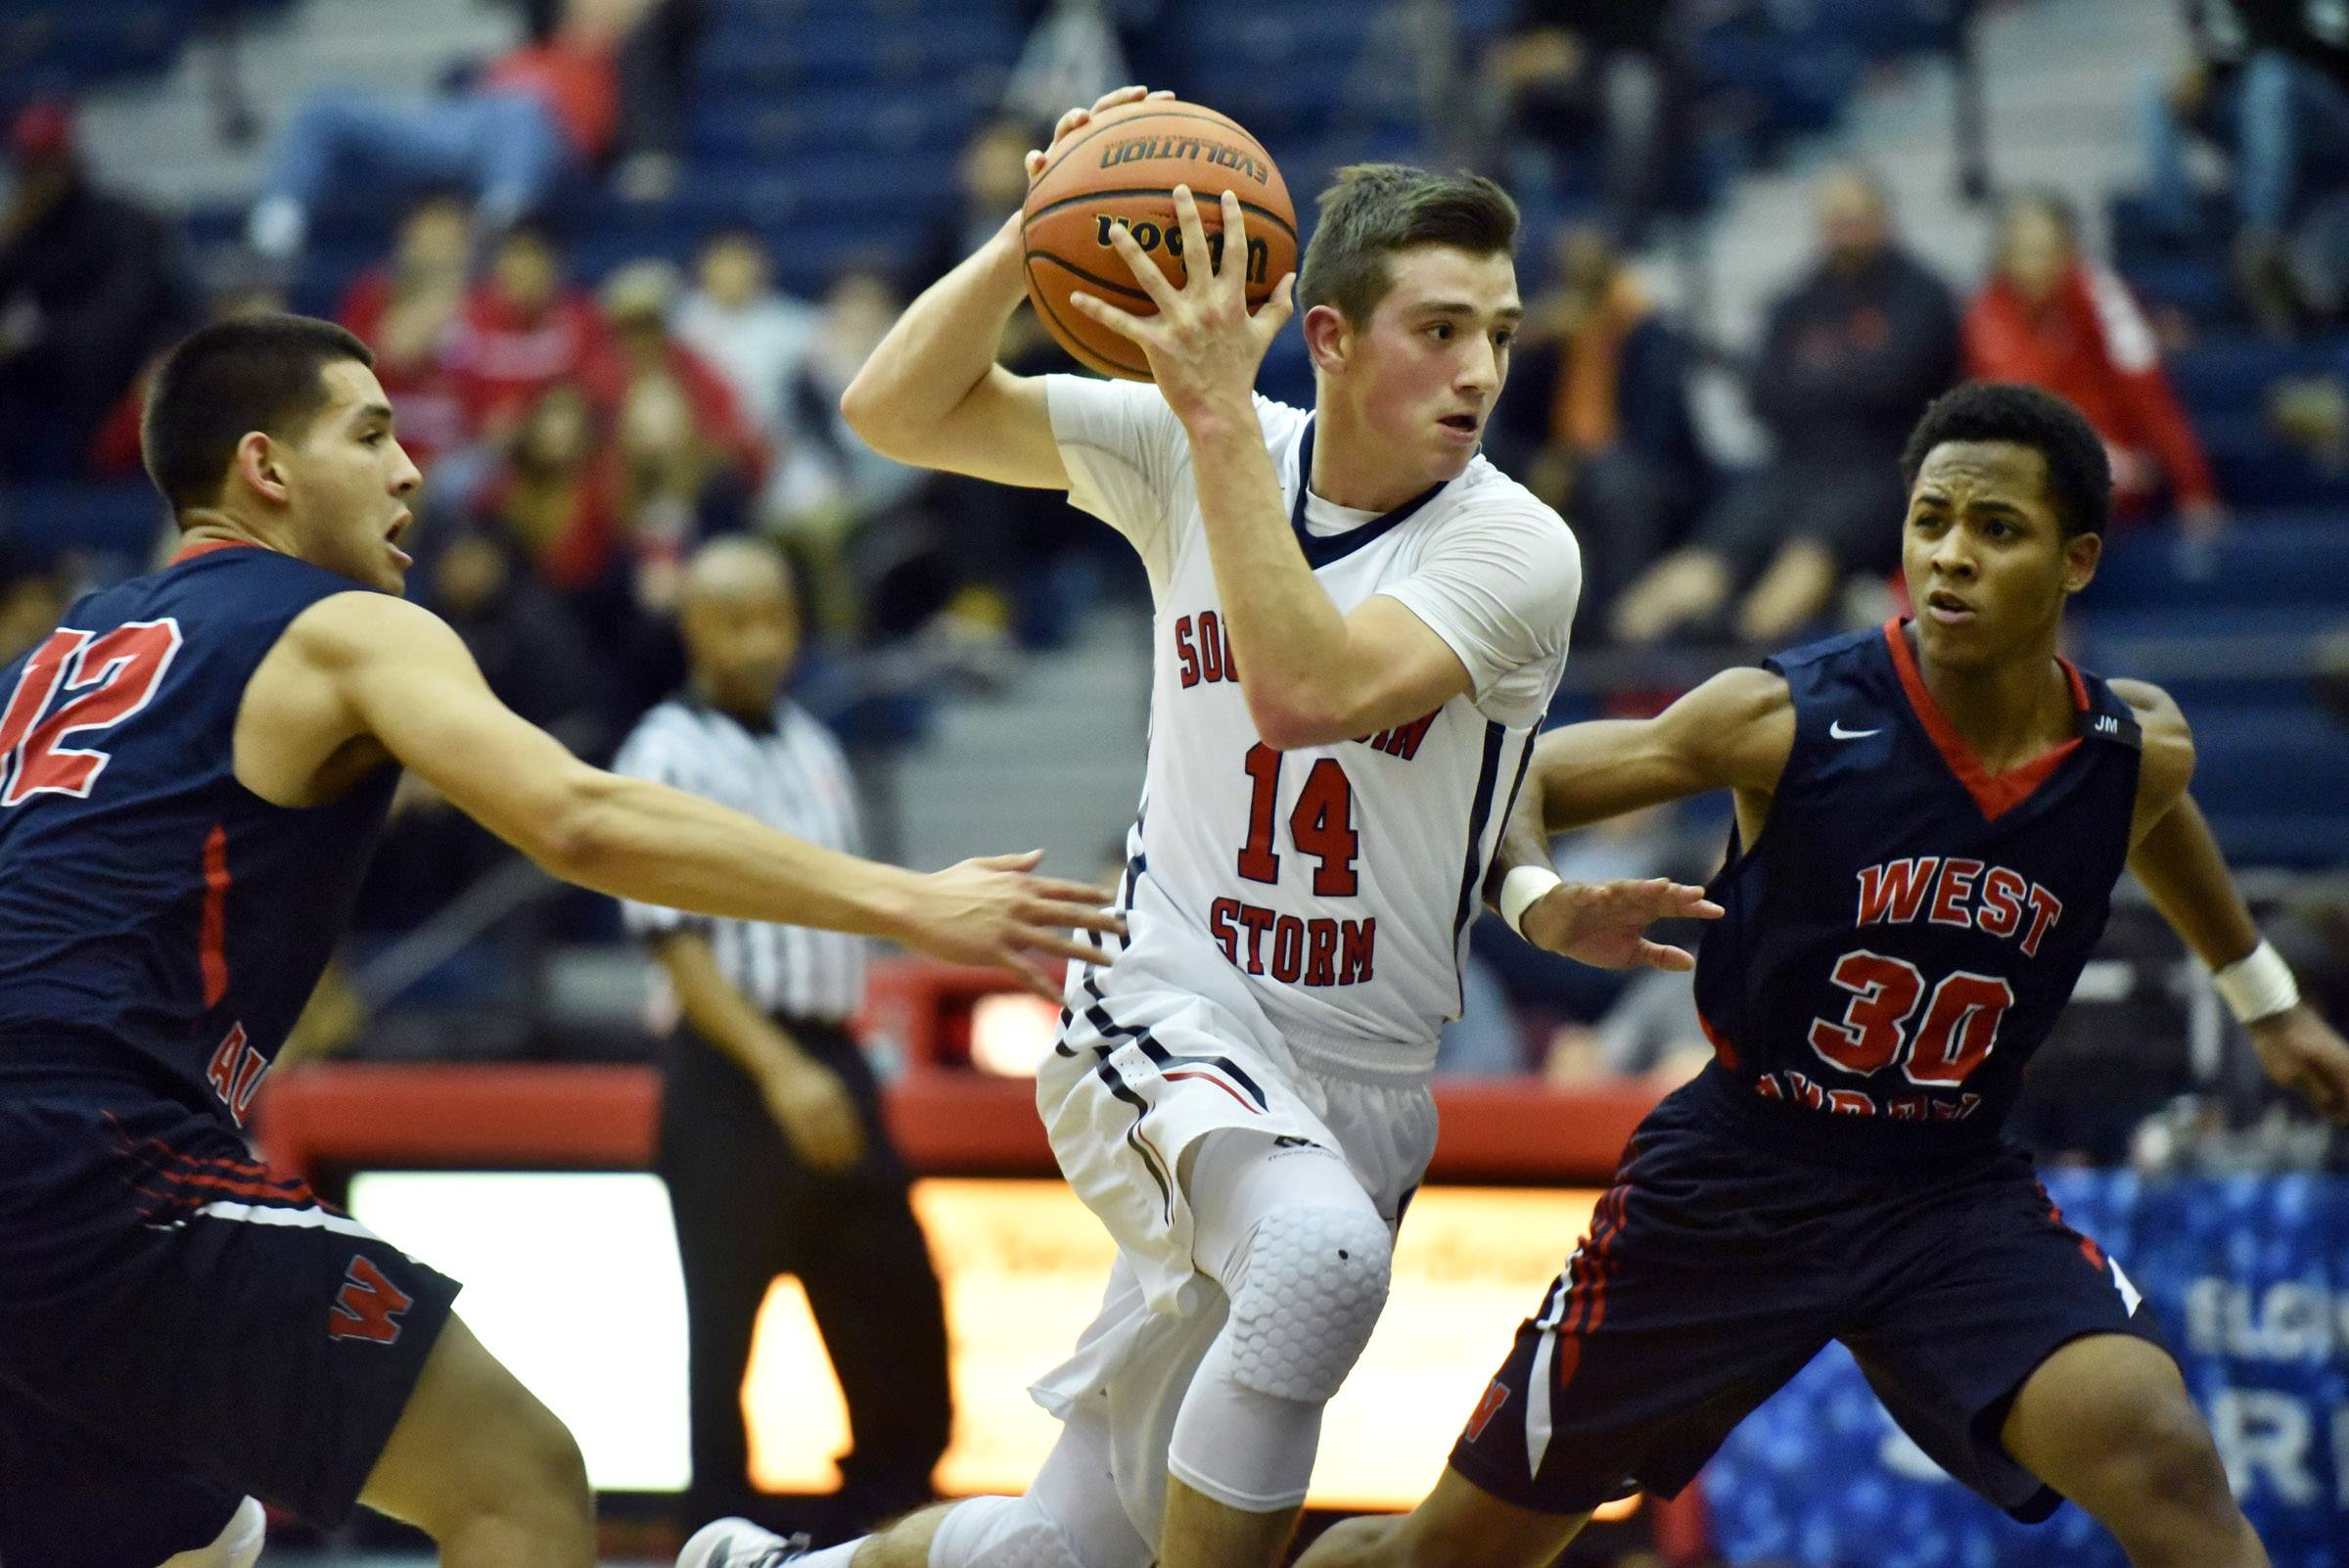 South Elgin's Kyle Scully drives between West Aurora's Damian Virgen and DaVion Cross Friday in South Elgin.